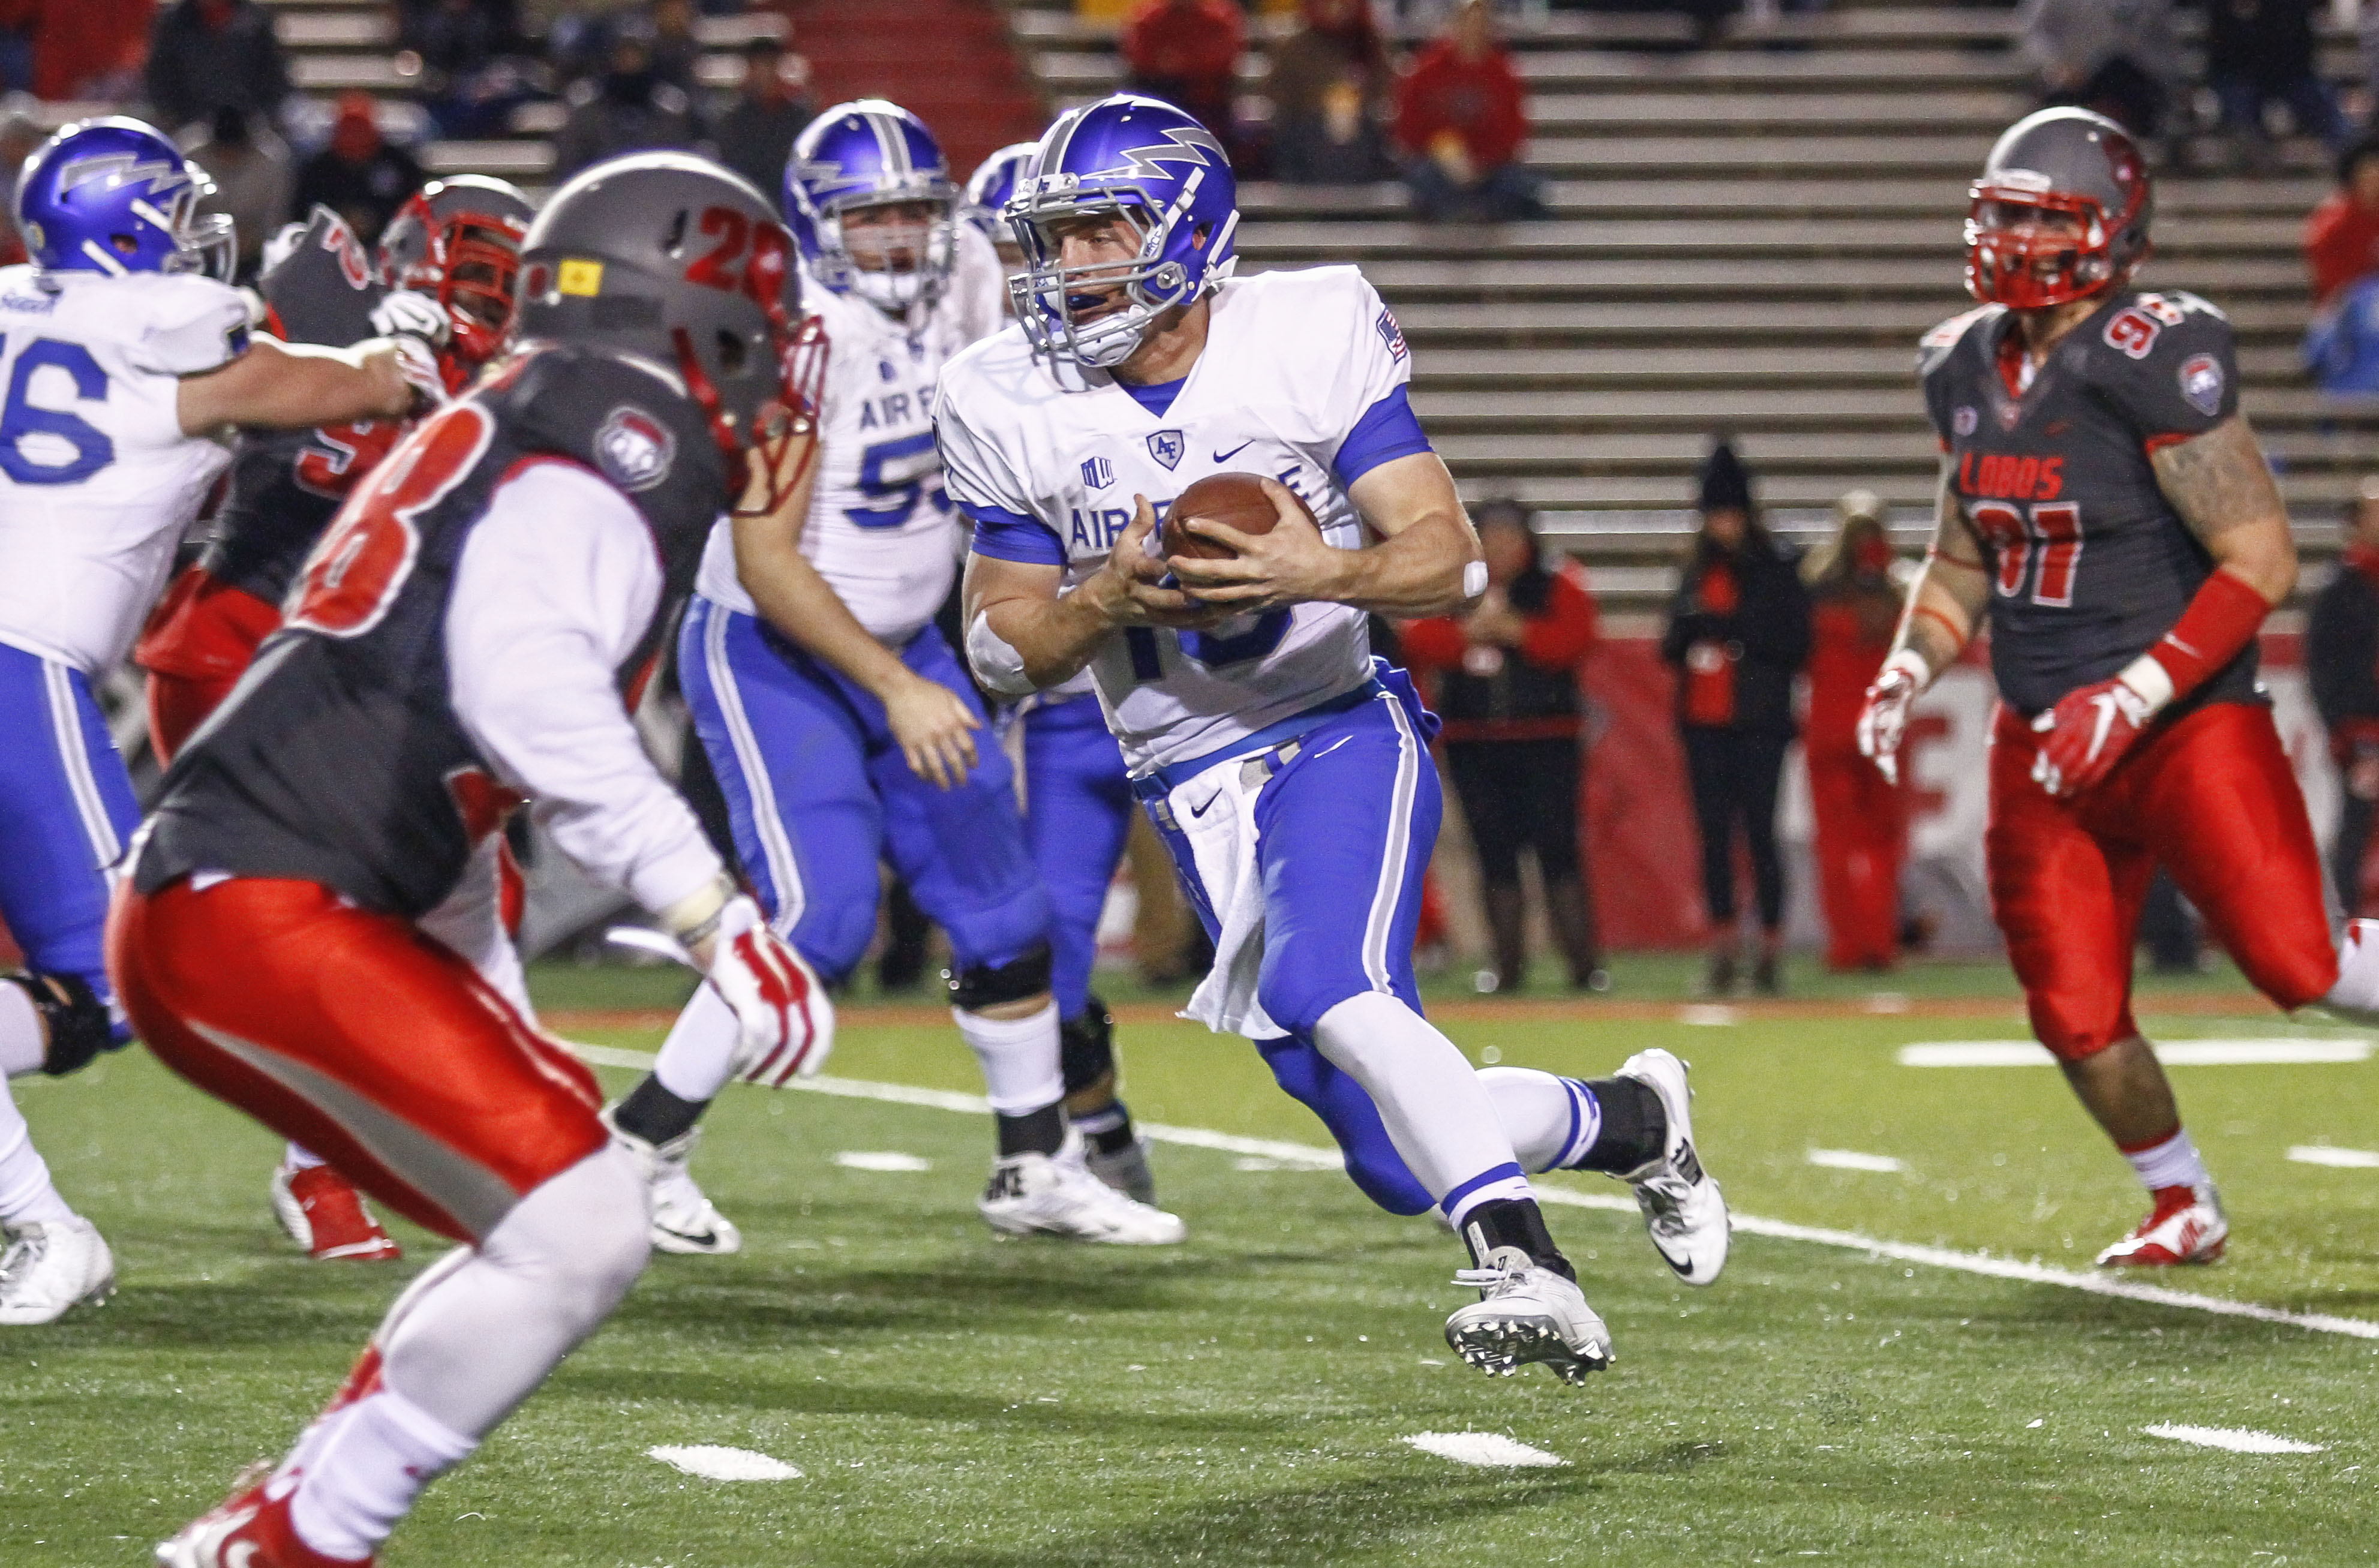 Air Force's Carson Roberts (16) carries against New Mexico during the first half of an NCAA college football game, Saturday, Nov. 28, 2015, in Albuquerque, N.M. (AP Photo/Juan Labreche)